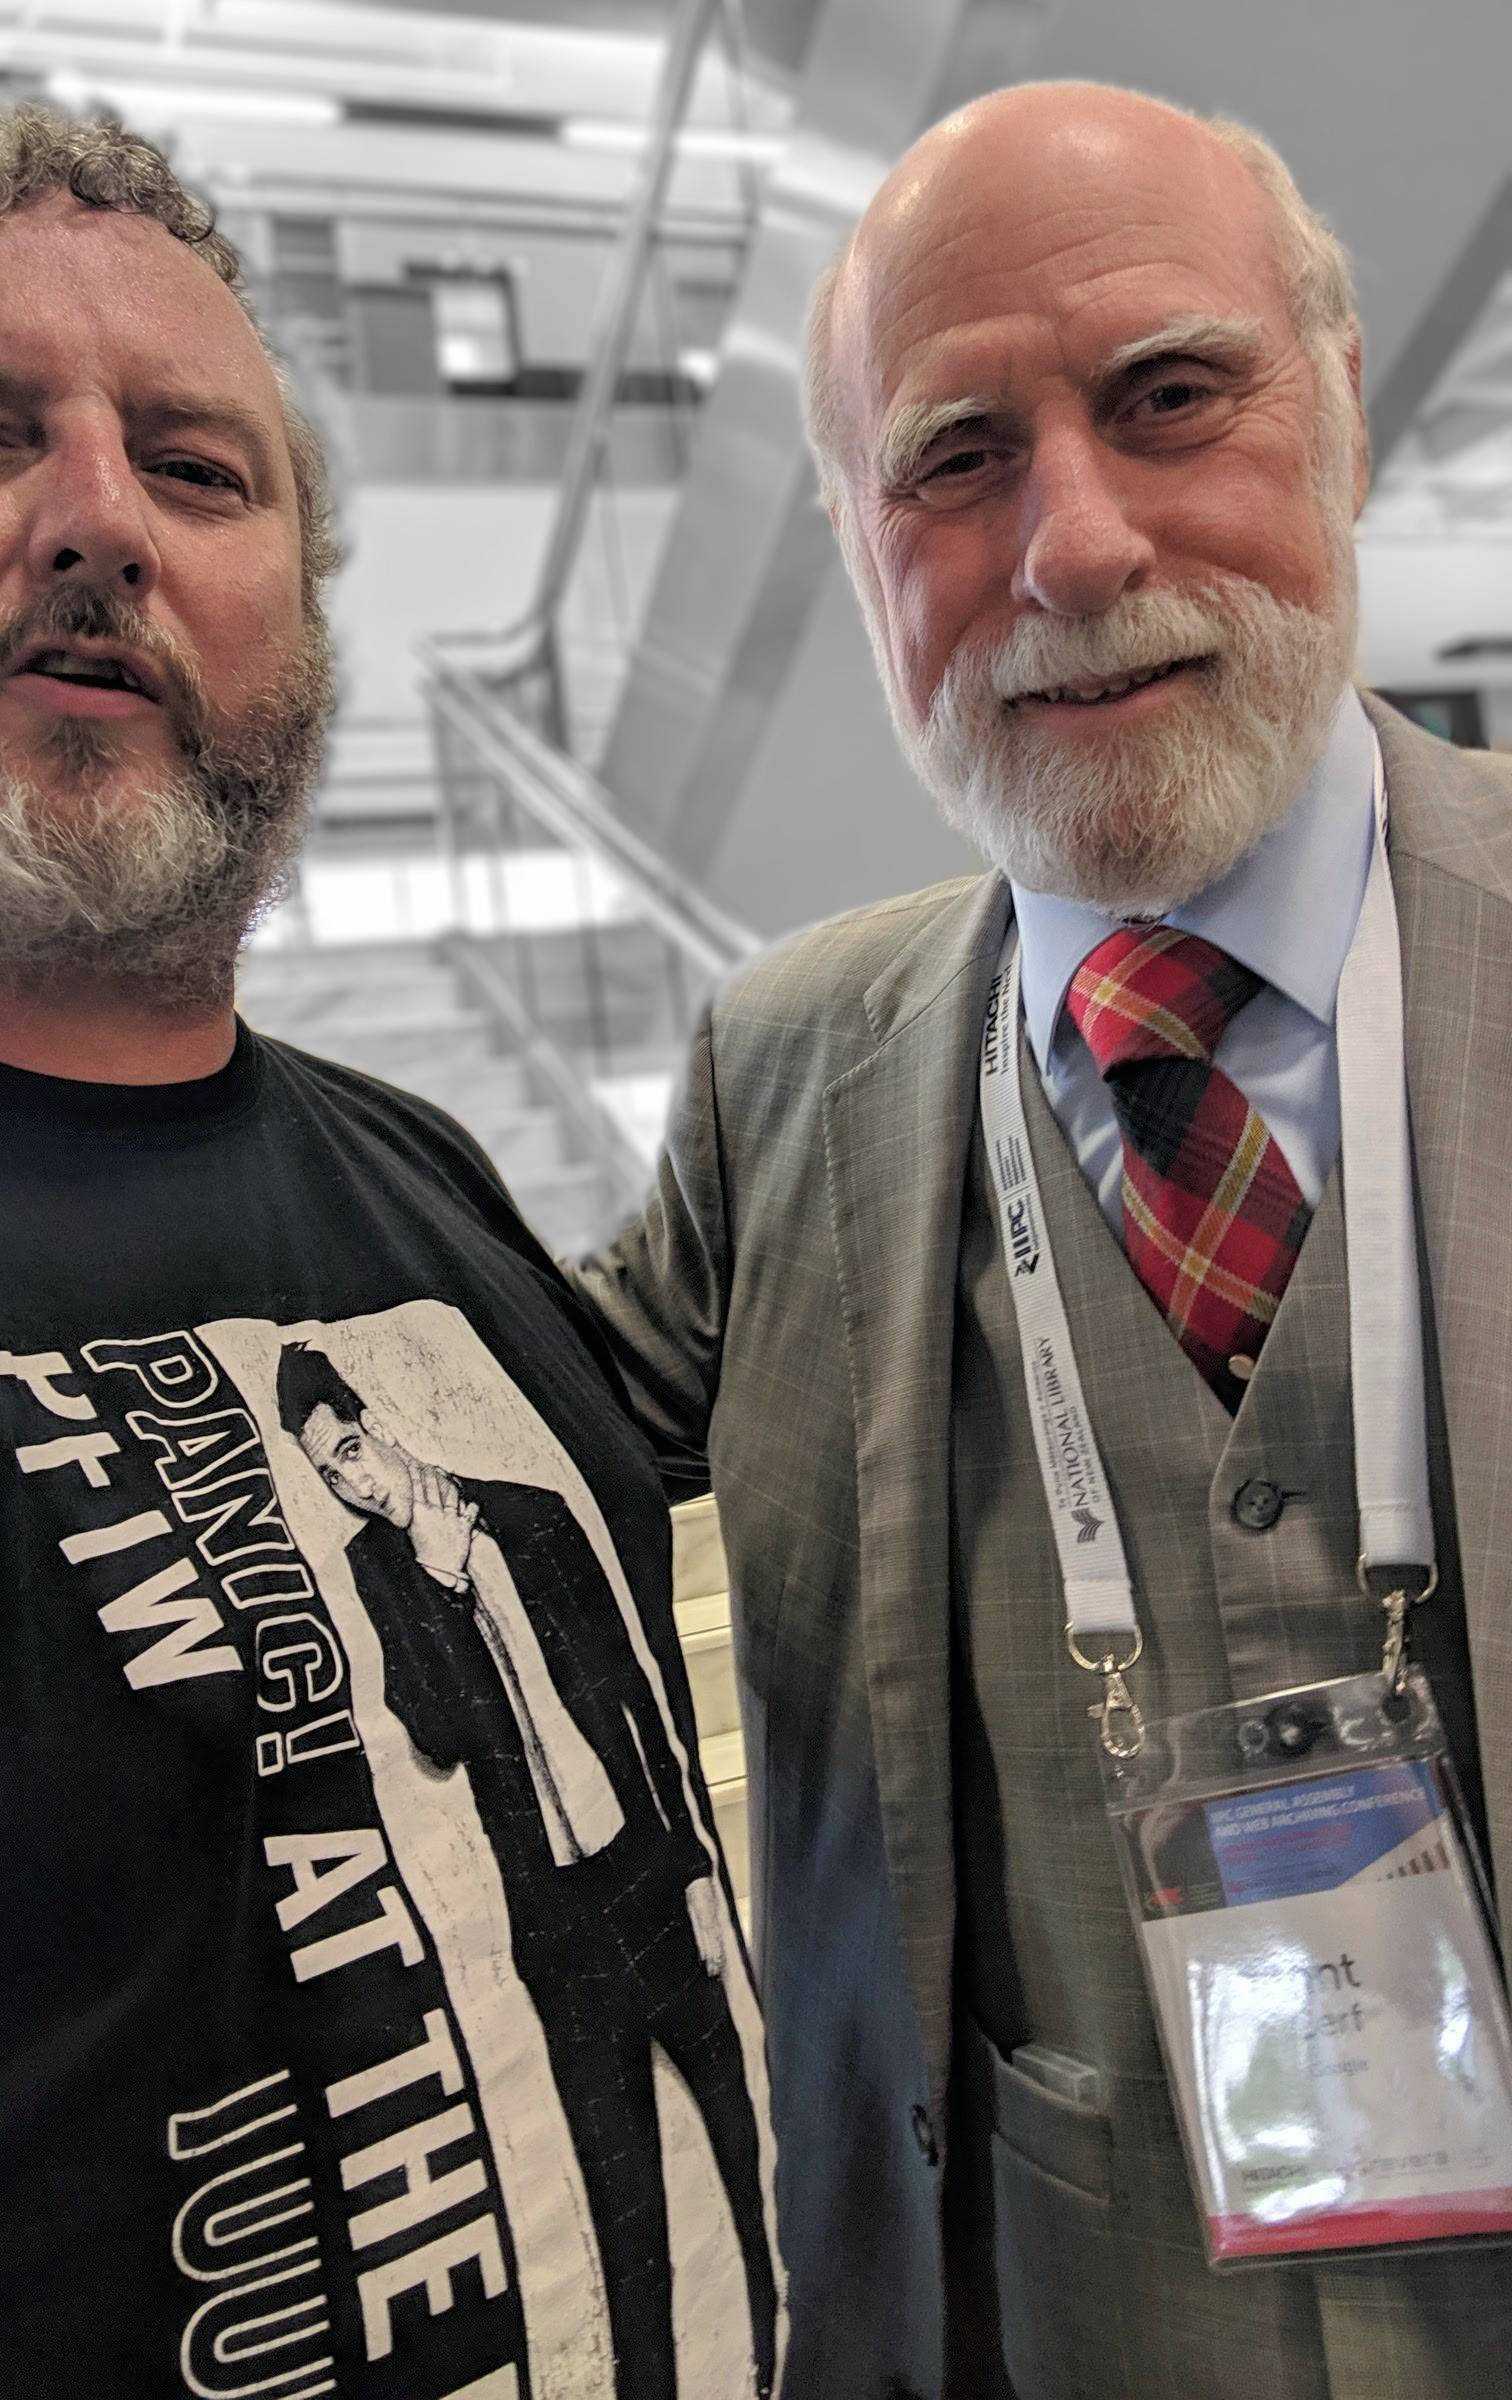 Mike with Vint Cerf in Aotearoa New Zealand 2018